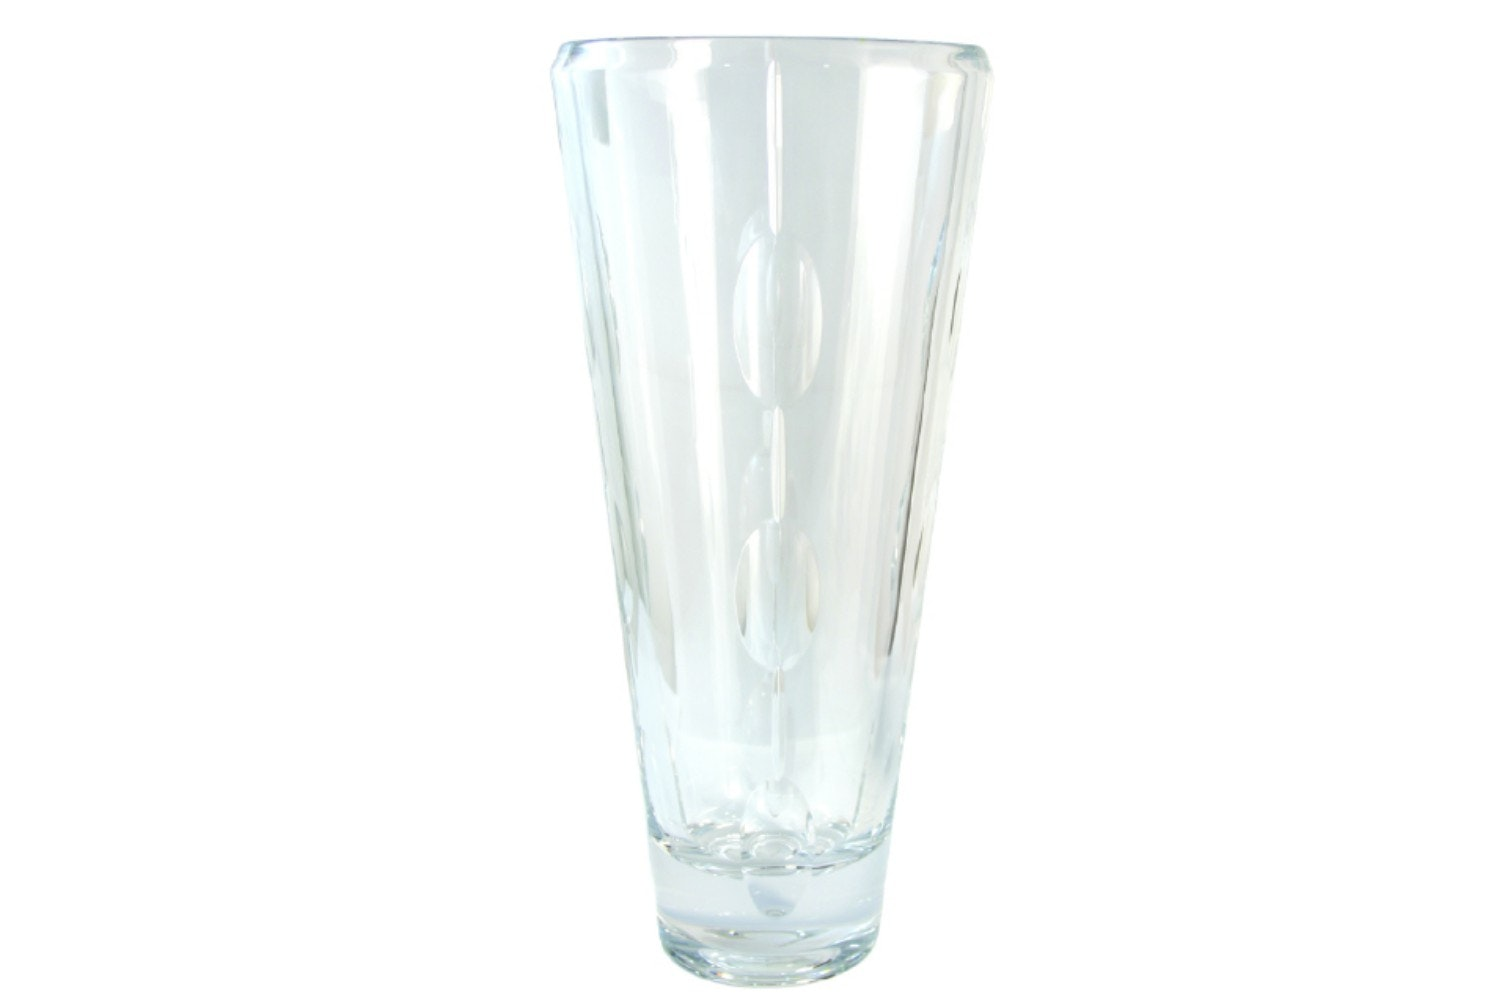 Tipperary Crystal Oval Cut Vase | 14 Inch